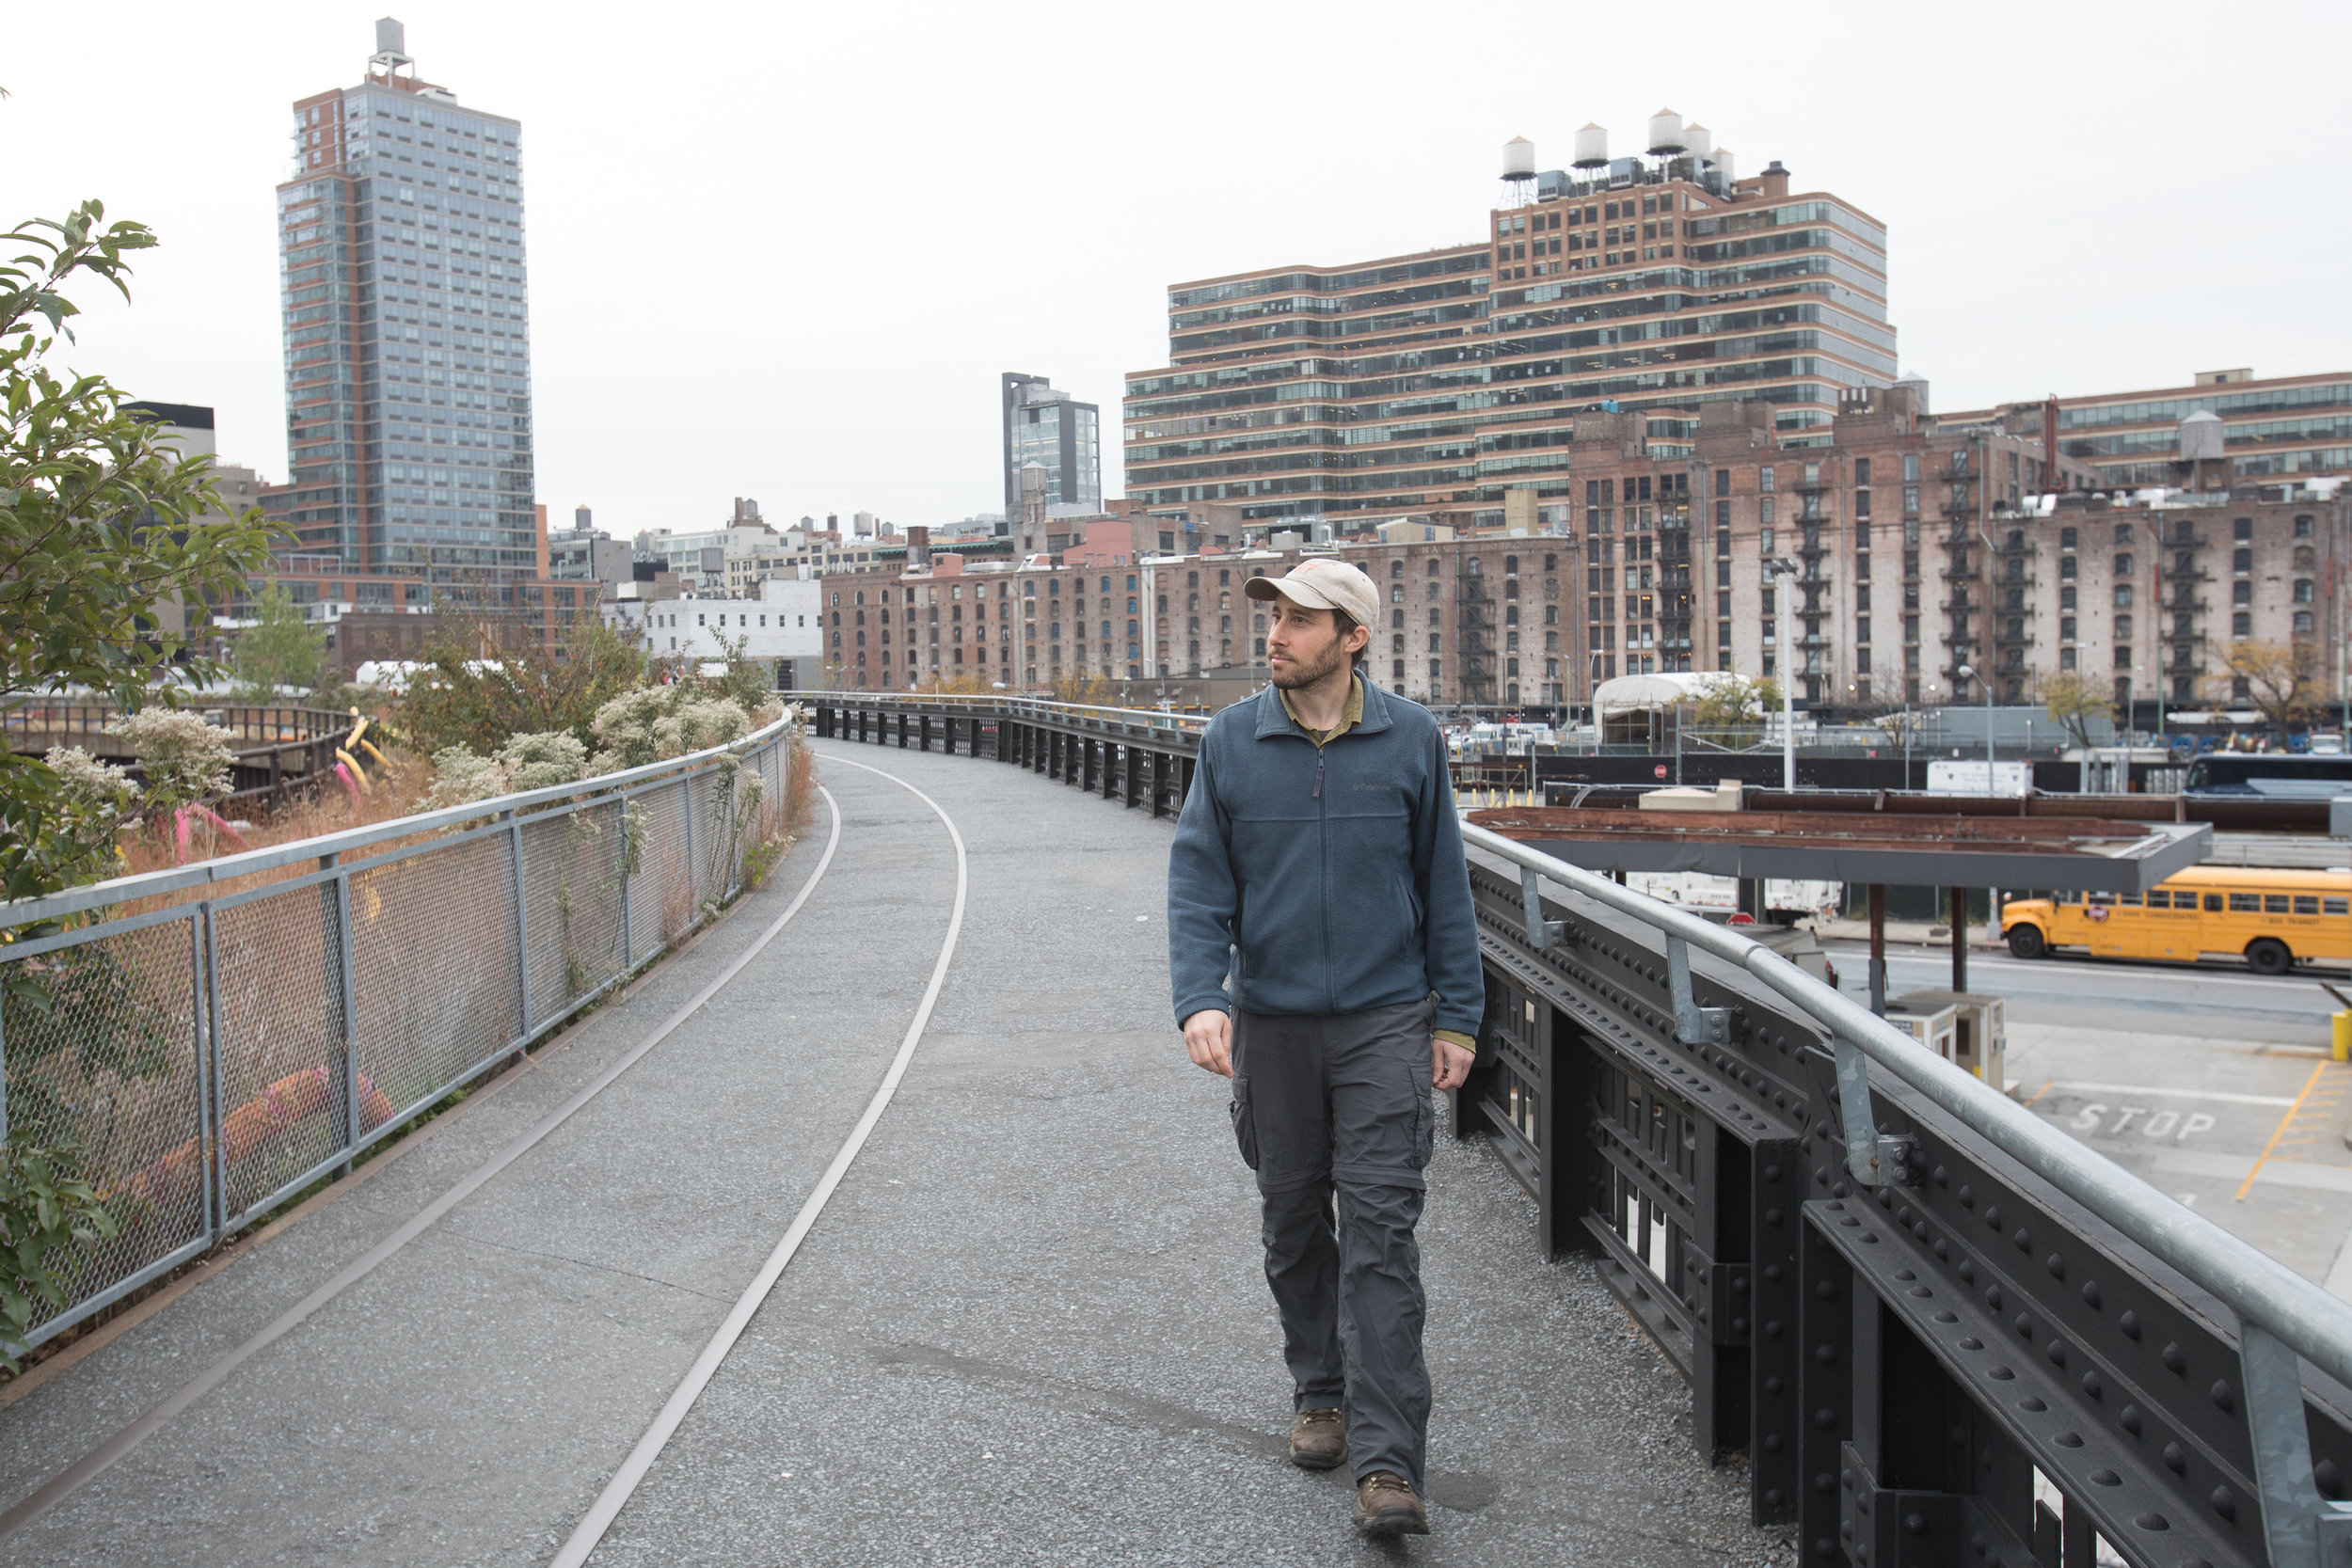 """Matt Green walks near Hudson Yards in Manhattan, part of his six-year quest to walk every street in New York City, chronicled in the documentary """"The World Before Your Feet."""" (Photo courtesy Greenwich Entertainment)"""